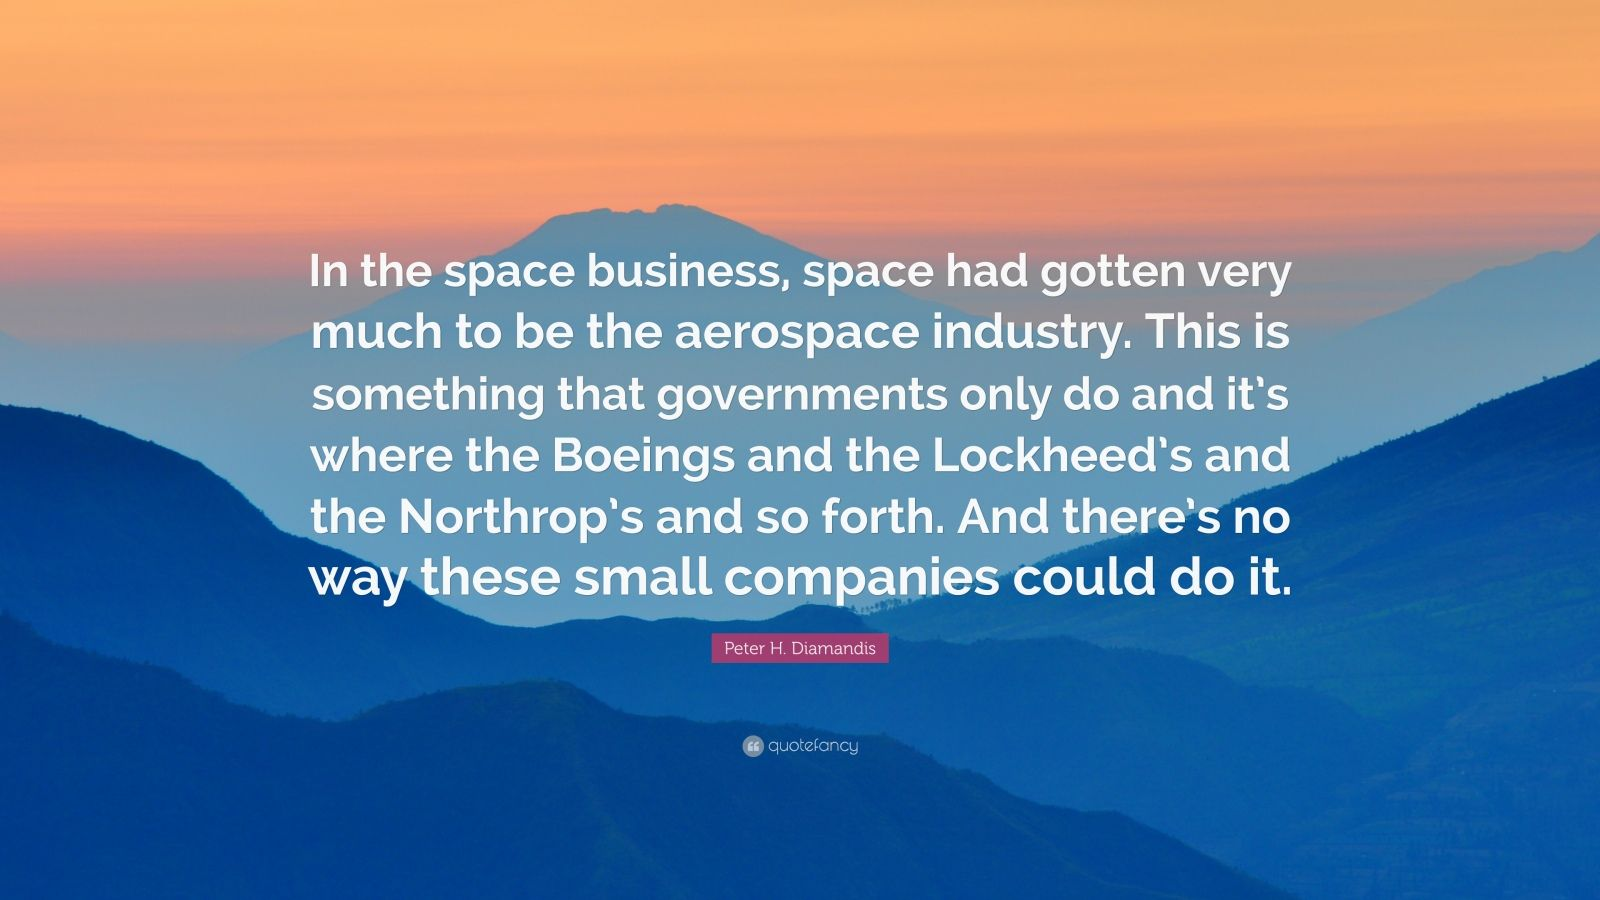 "Peter H. Diamandis Quote: ""In the space business, space had gotten very much to be the aerospace industry. This is something that governments only do and it's where the Boeings and the Lockheed's and the Northrop's and so forth. And there's no way these small companies could do it."""